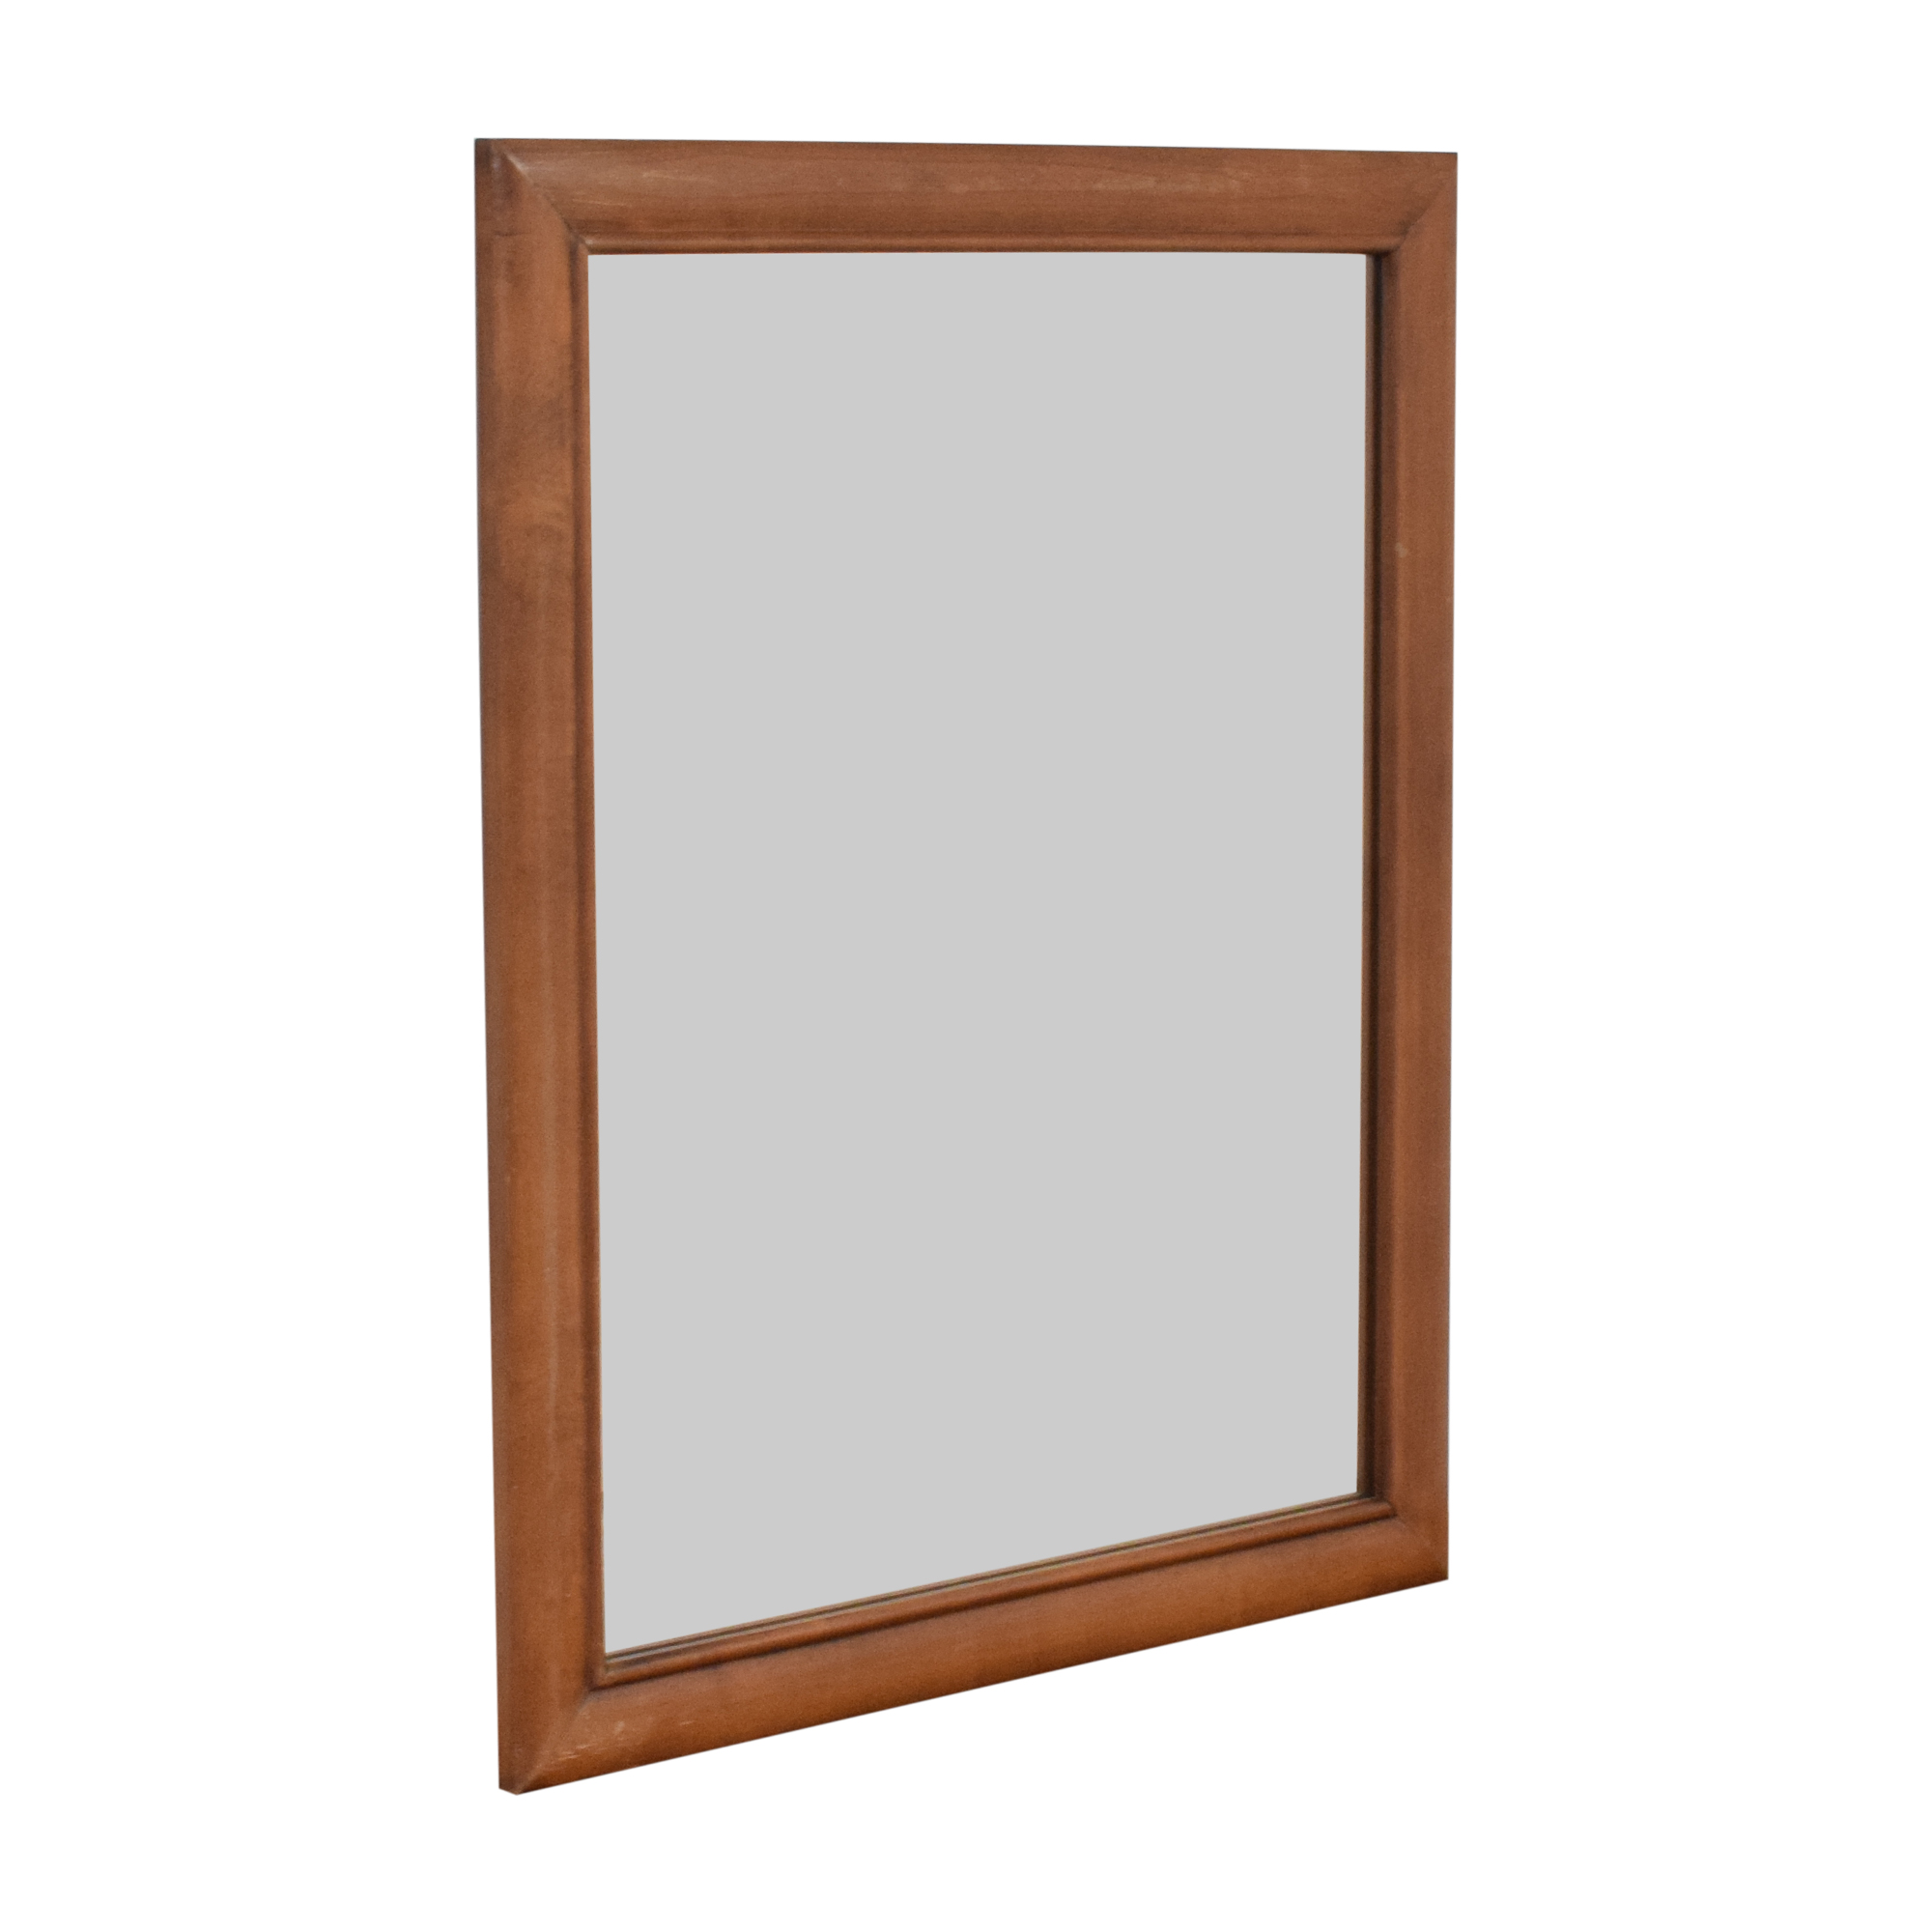 Framed Wall Mirror sale